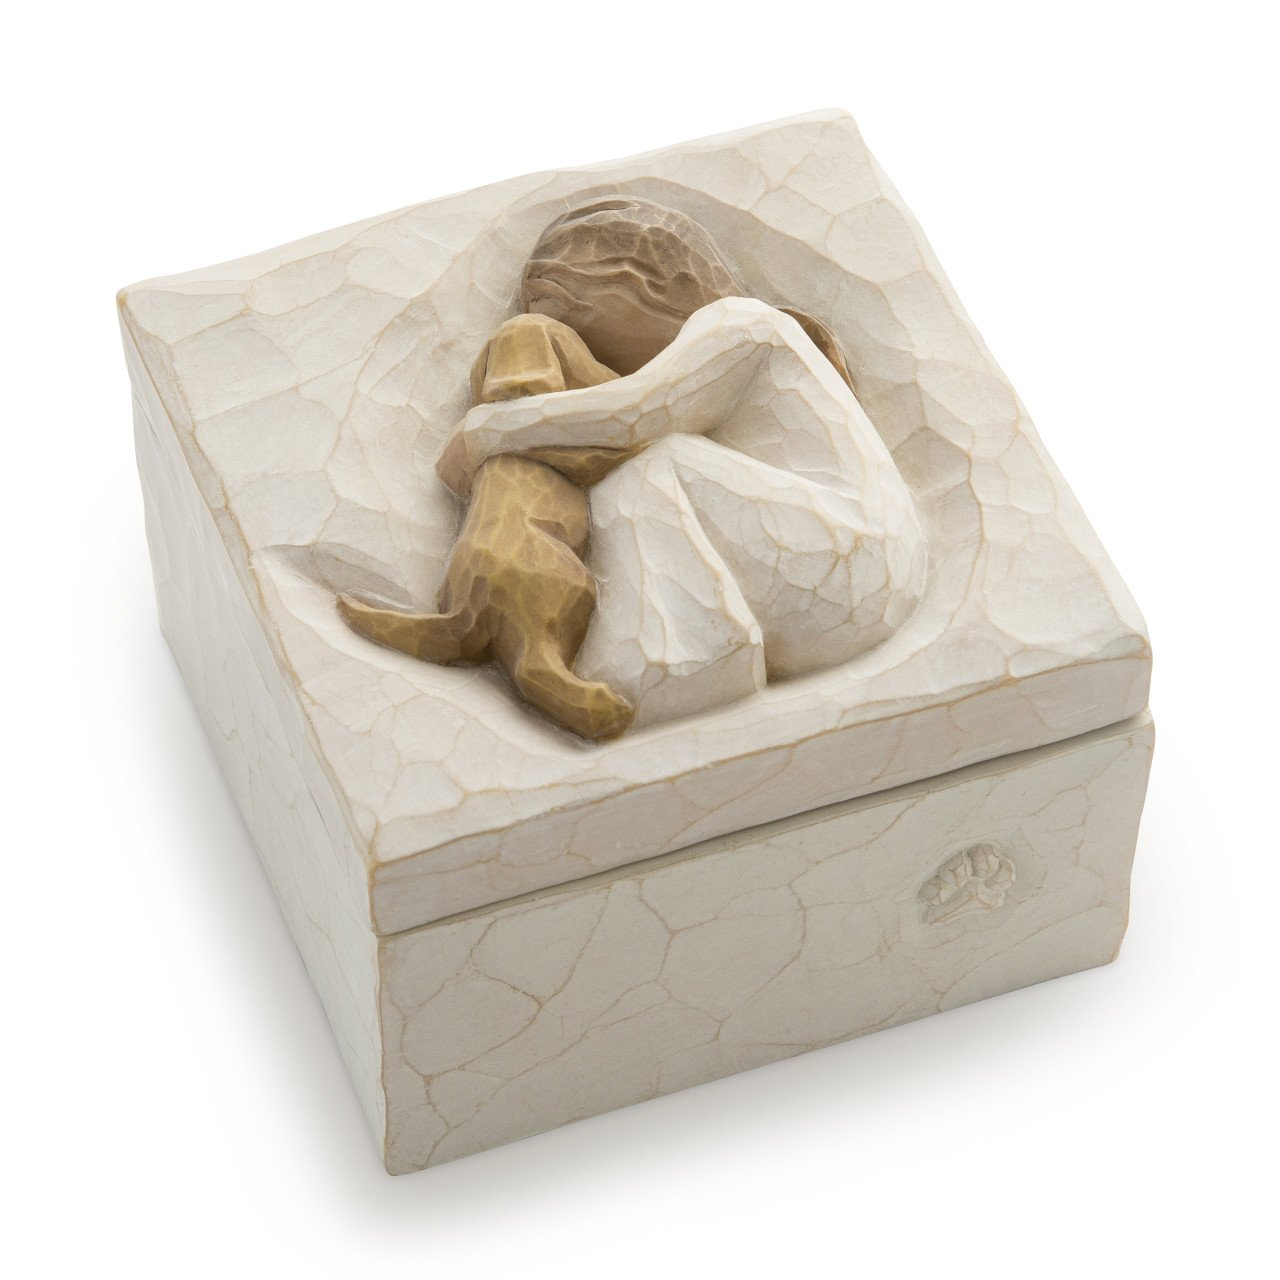 Willow Tree hand-painted sculpted Keepsake Box, True (26603) by Willow Tree